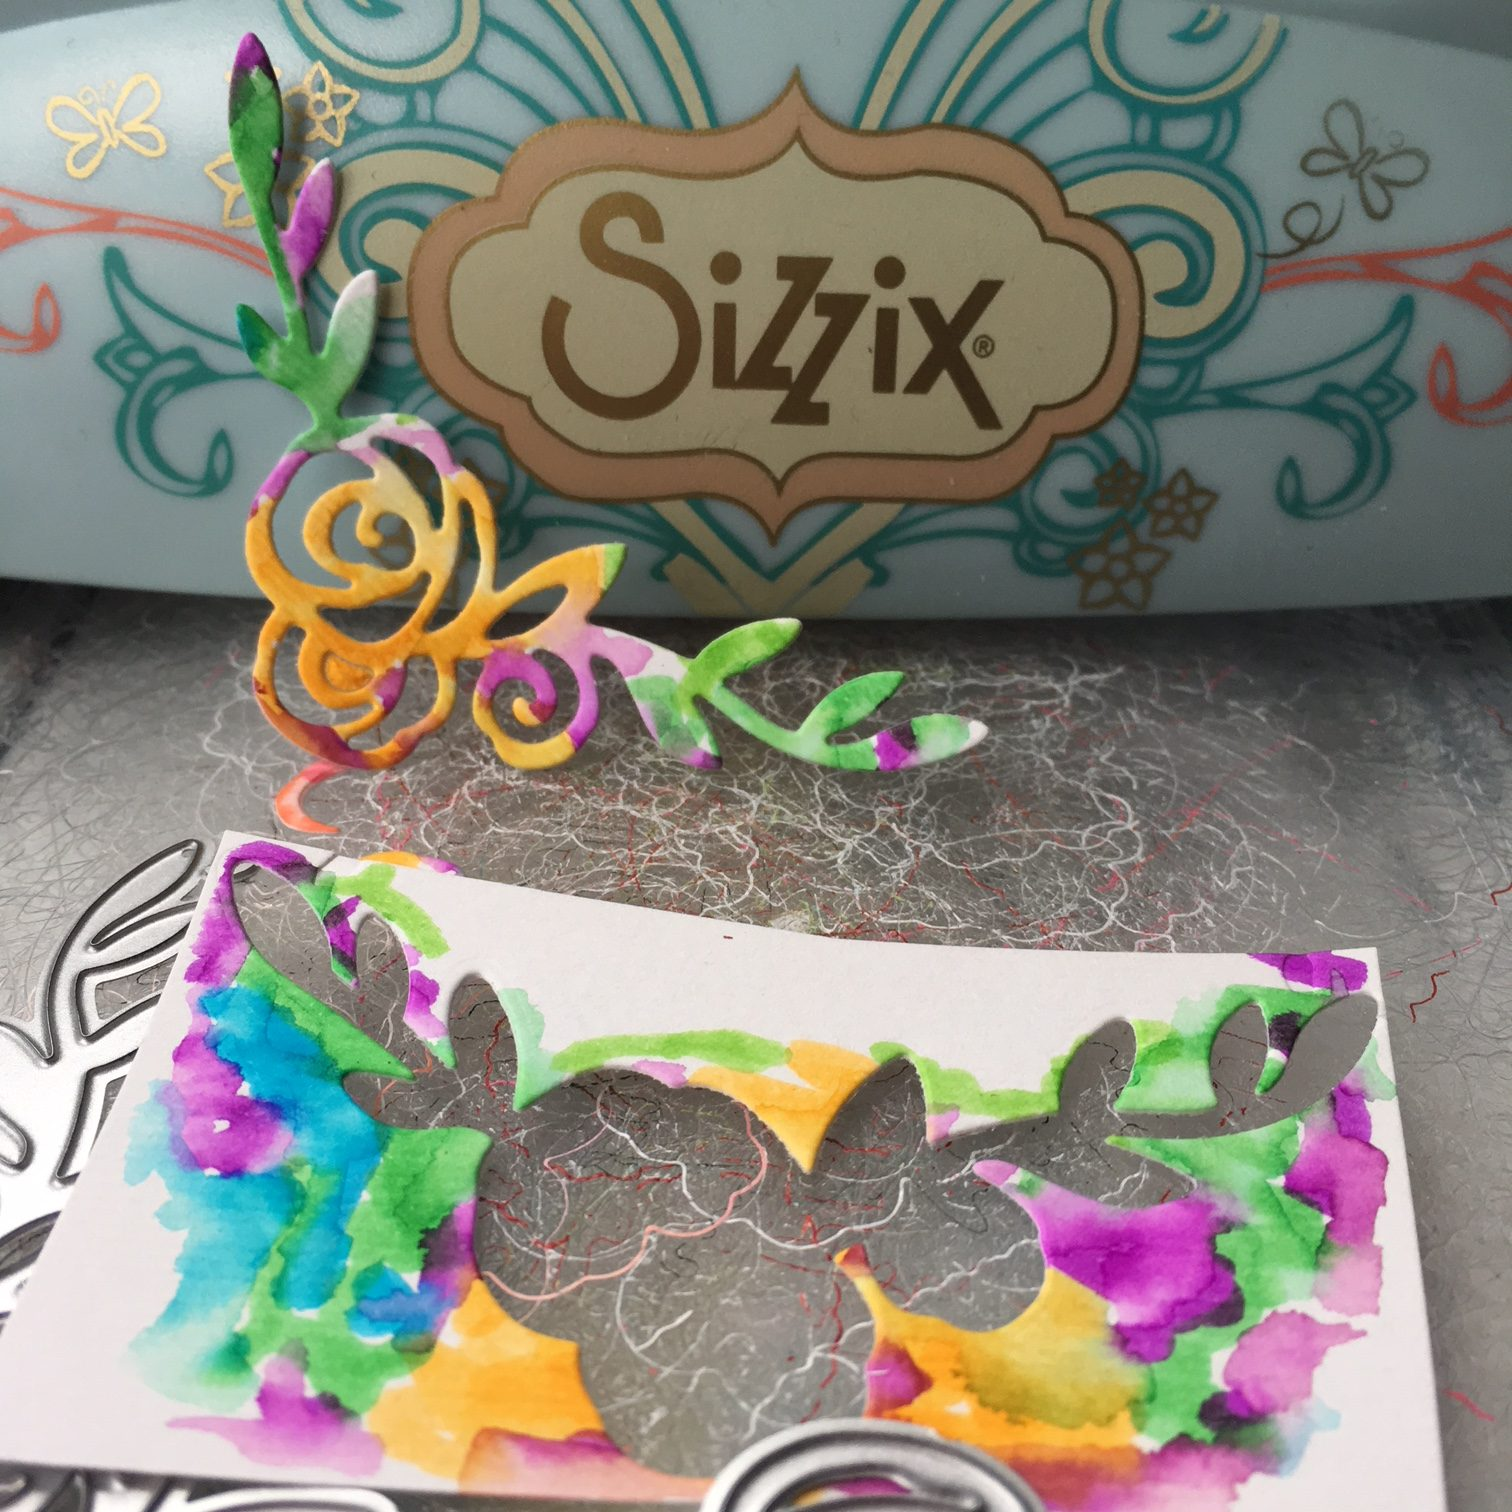 Sizzix Big shot machine and watercolour drawings on white paper and the result - colourful paper embellishments for greeting card decoration